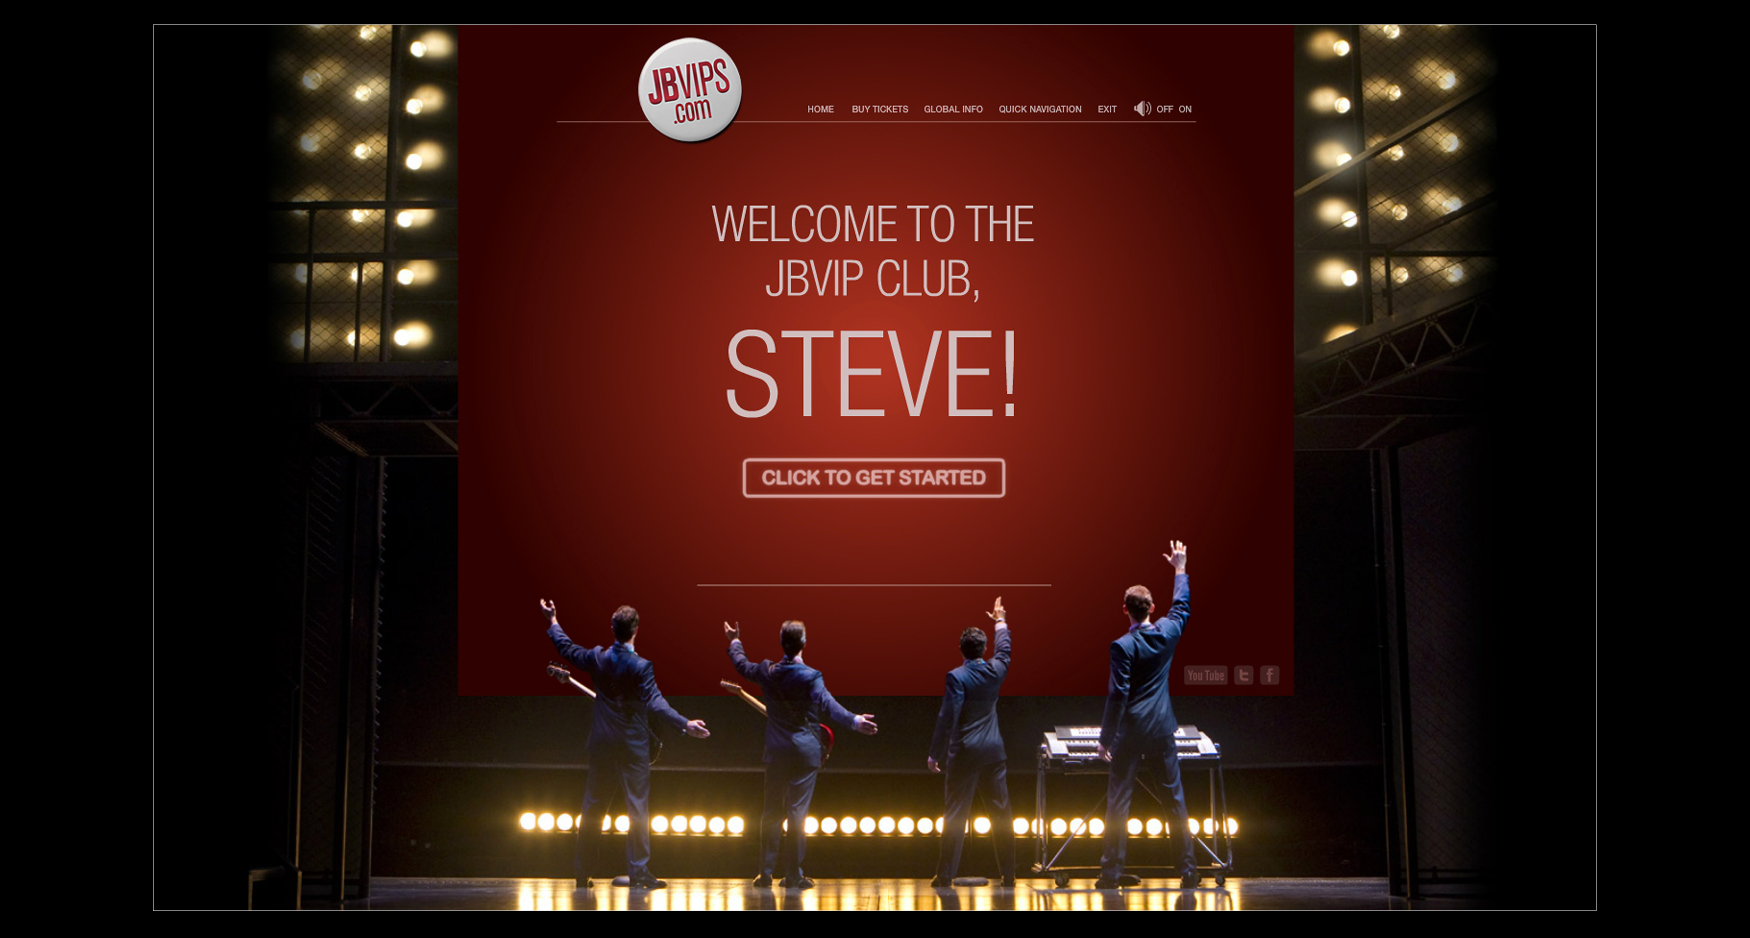 BP Large Images39 - JERSEY BOYS - PERSONALIZED WELCOME SCREEN